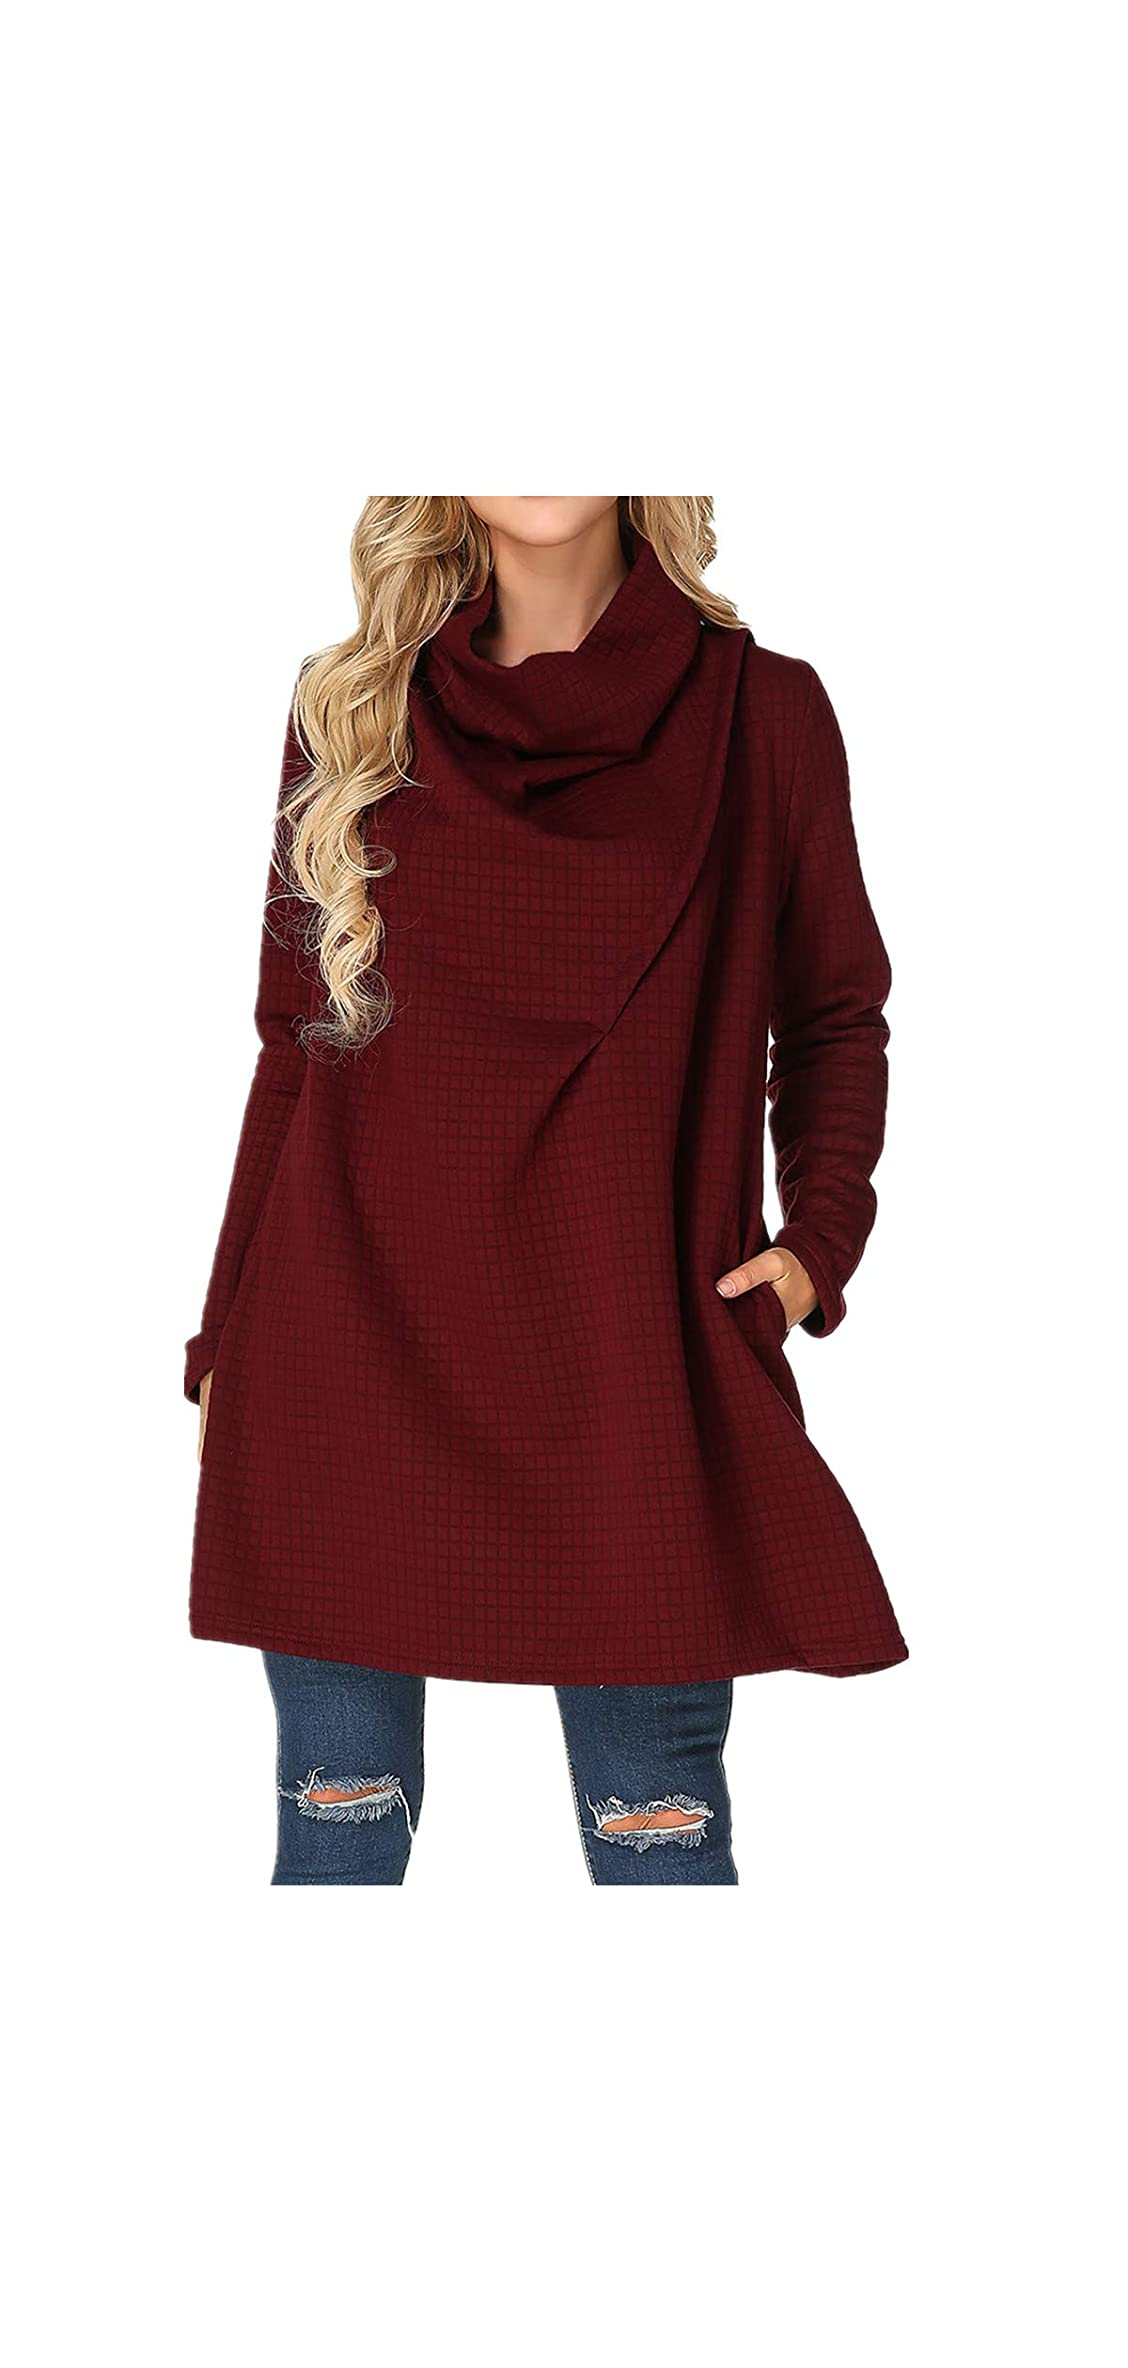 Womens Cowl Neck Sweater Dress Plus Size Long Sleeve Knit